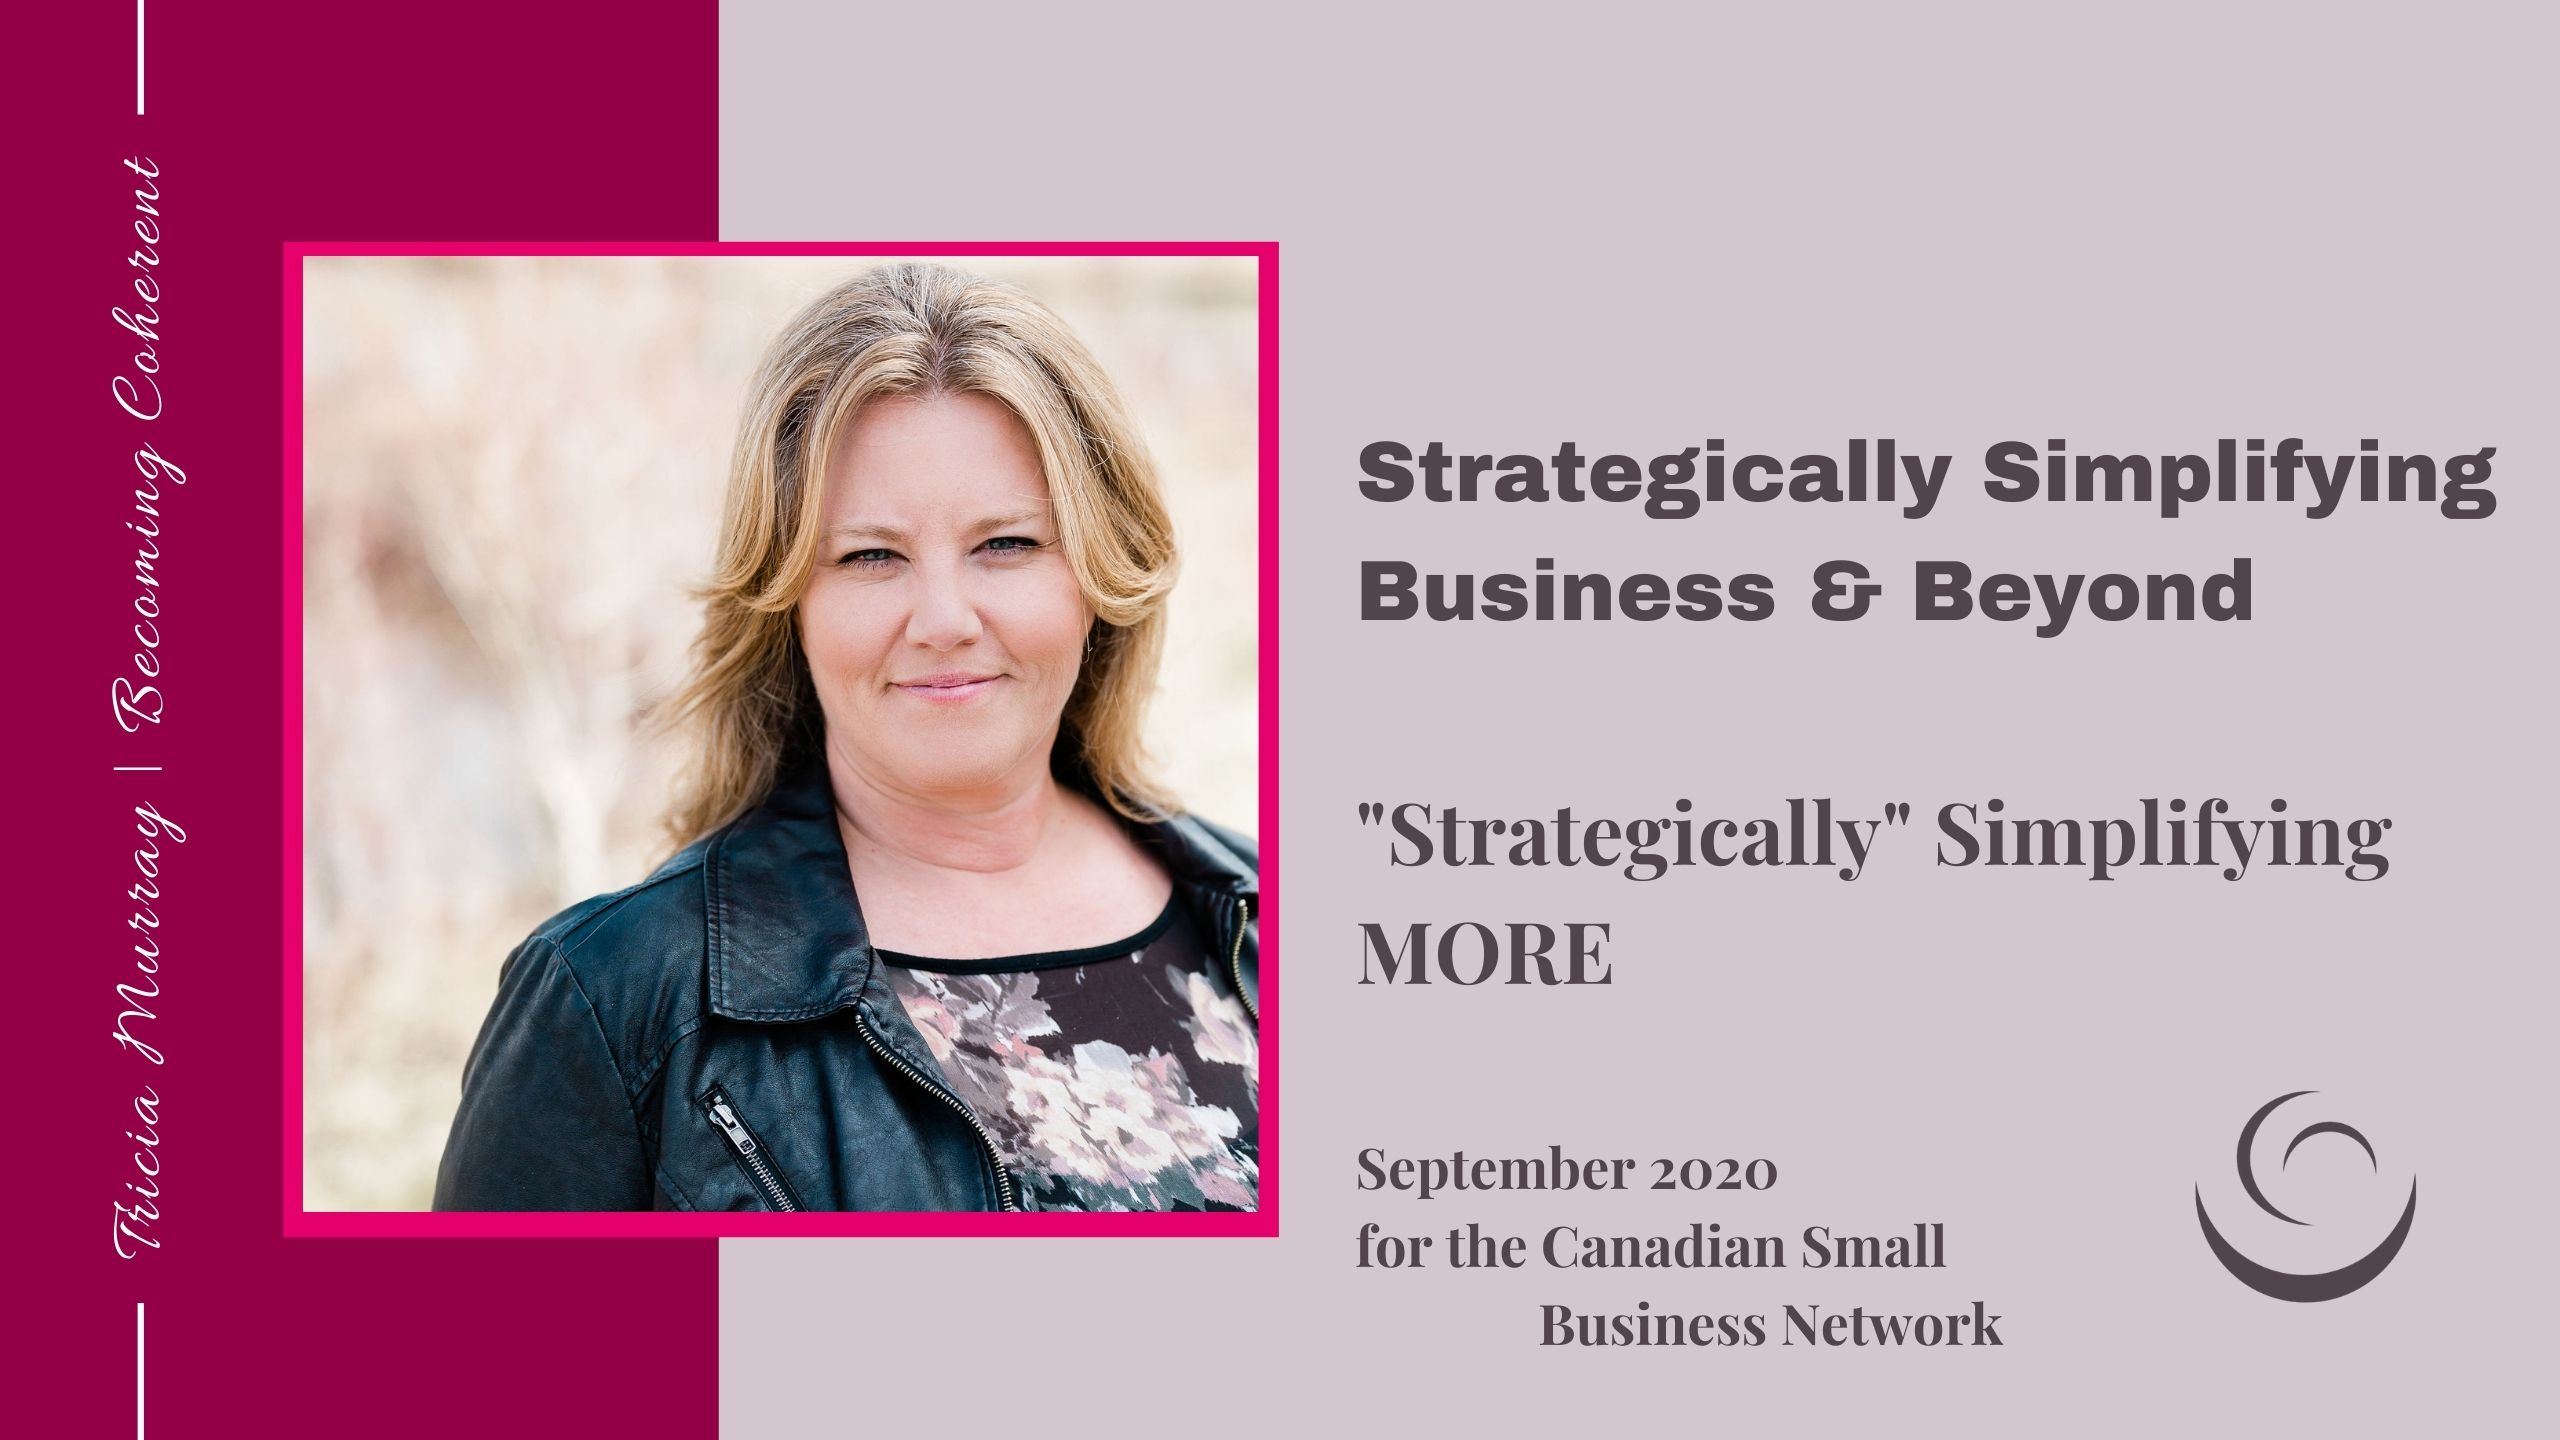 Canadian Small Business Women | Tricia Murray | September 2020 | Simplifying MORE